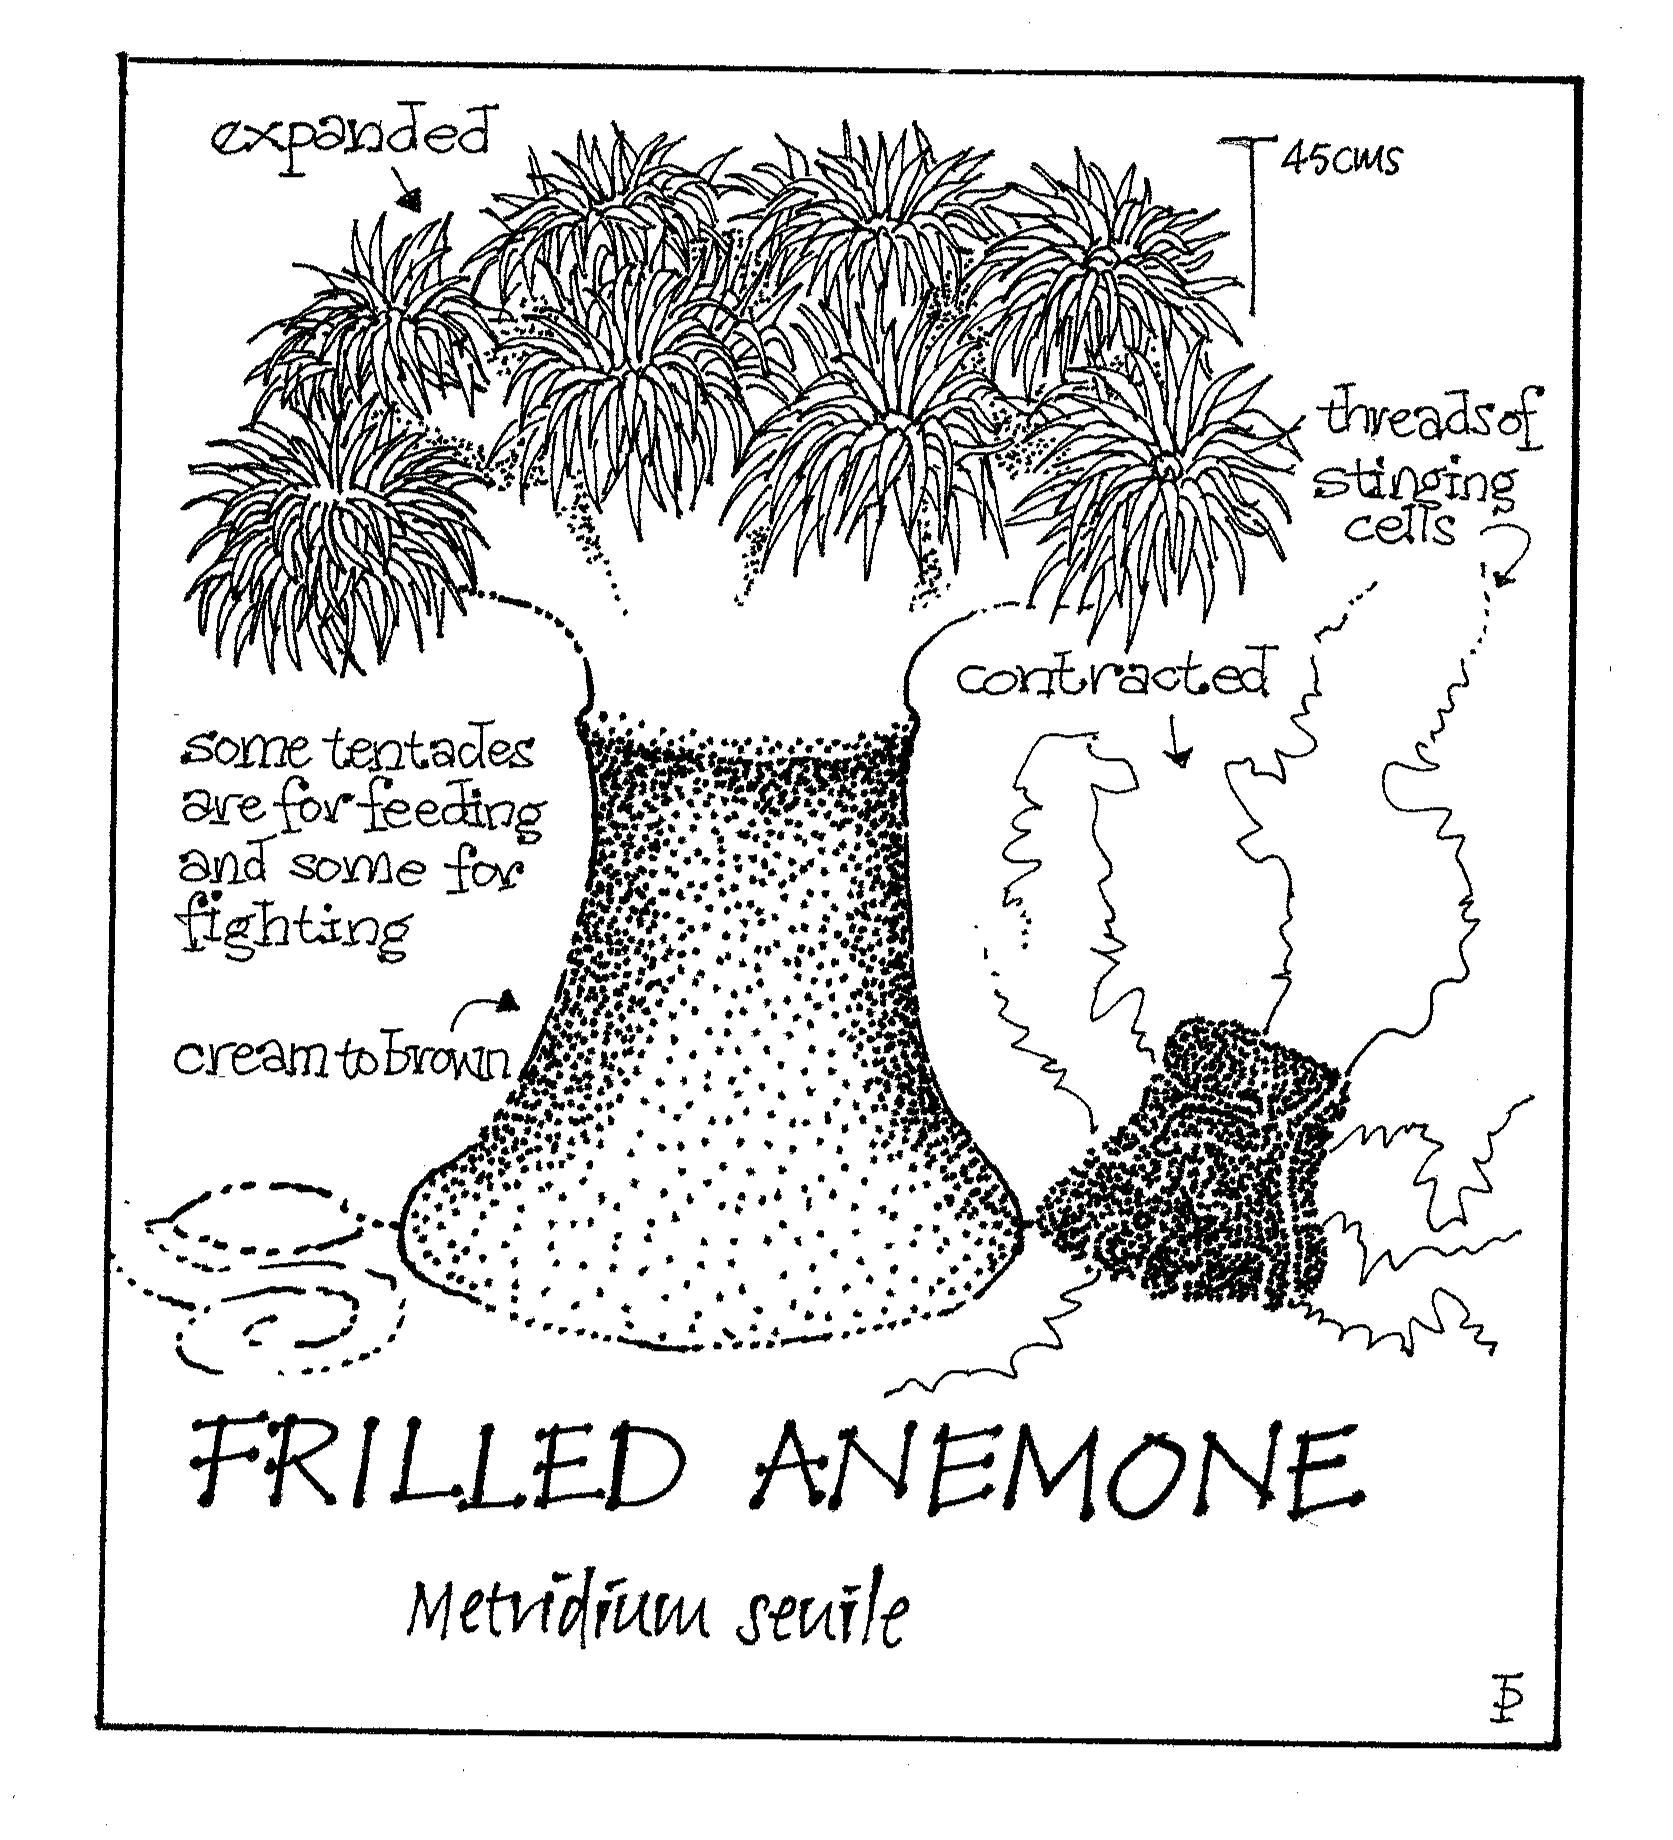 frilled anemone copy.png